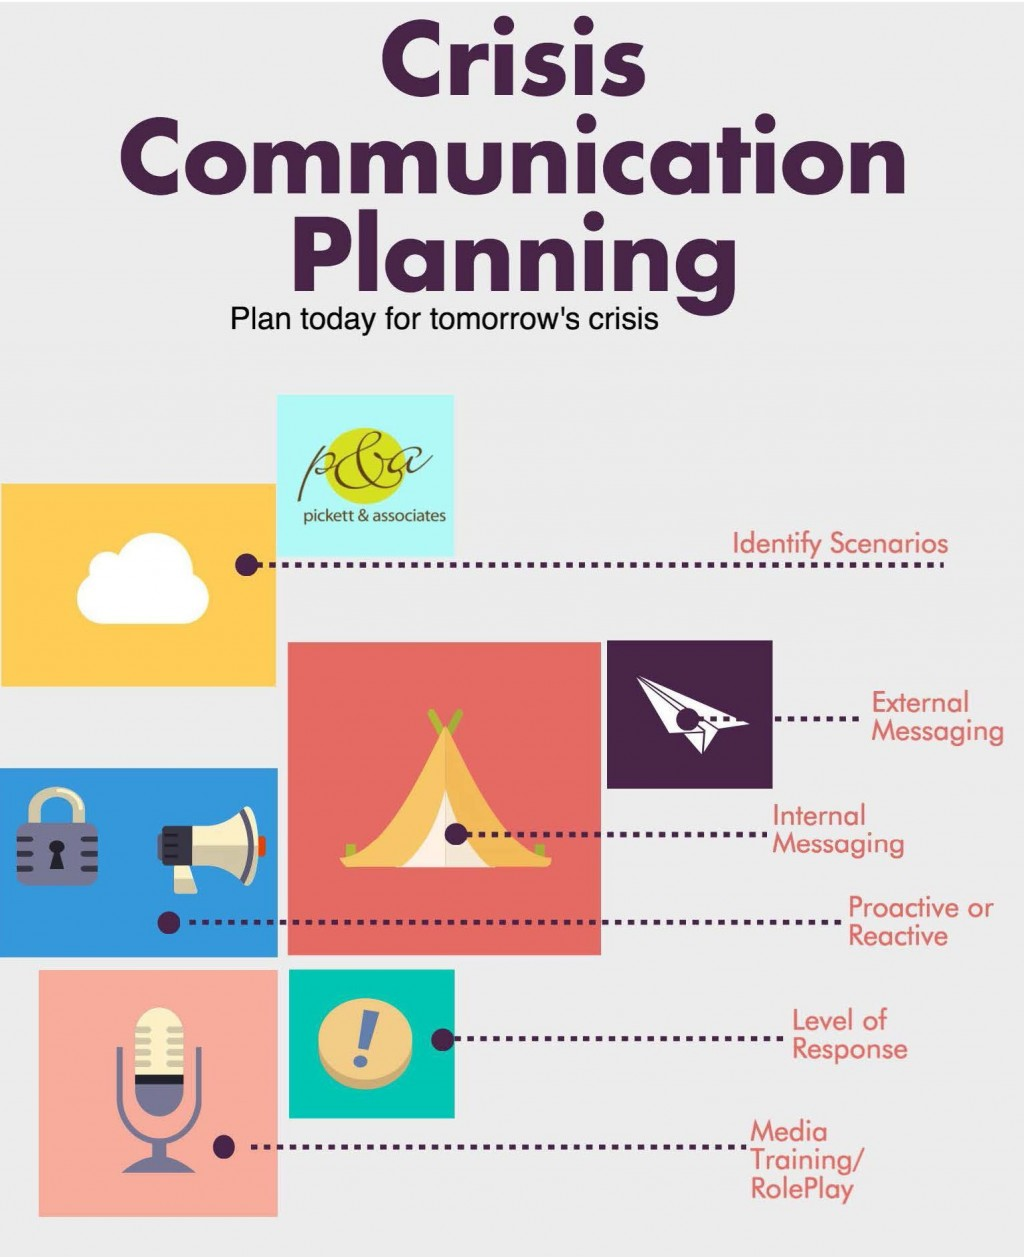 003 Phenomenal Crisi Communication Plan Template High Definition  For Higher Education NonprofitLarge